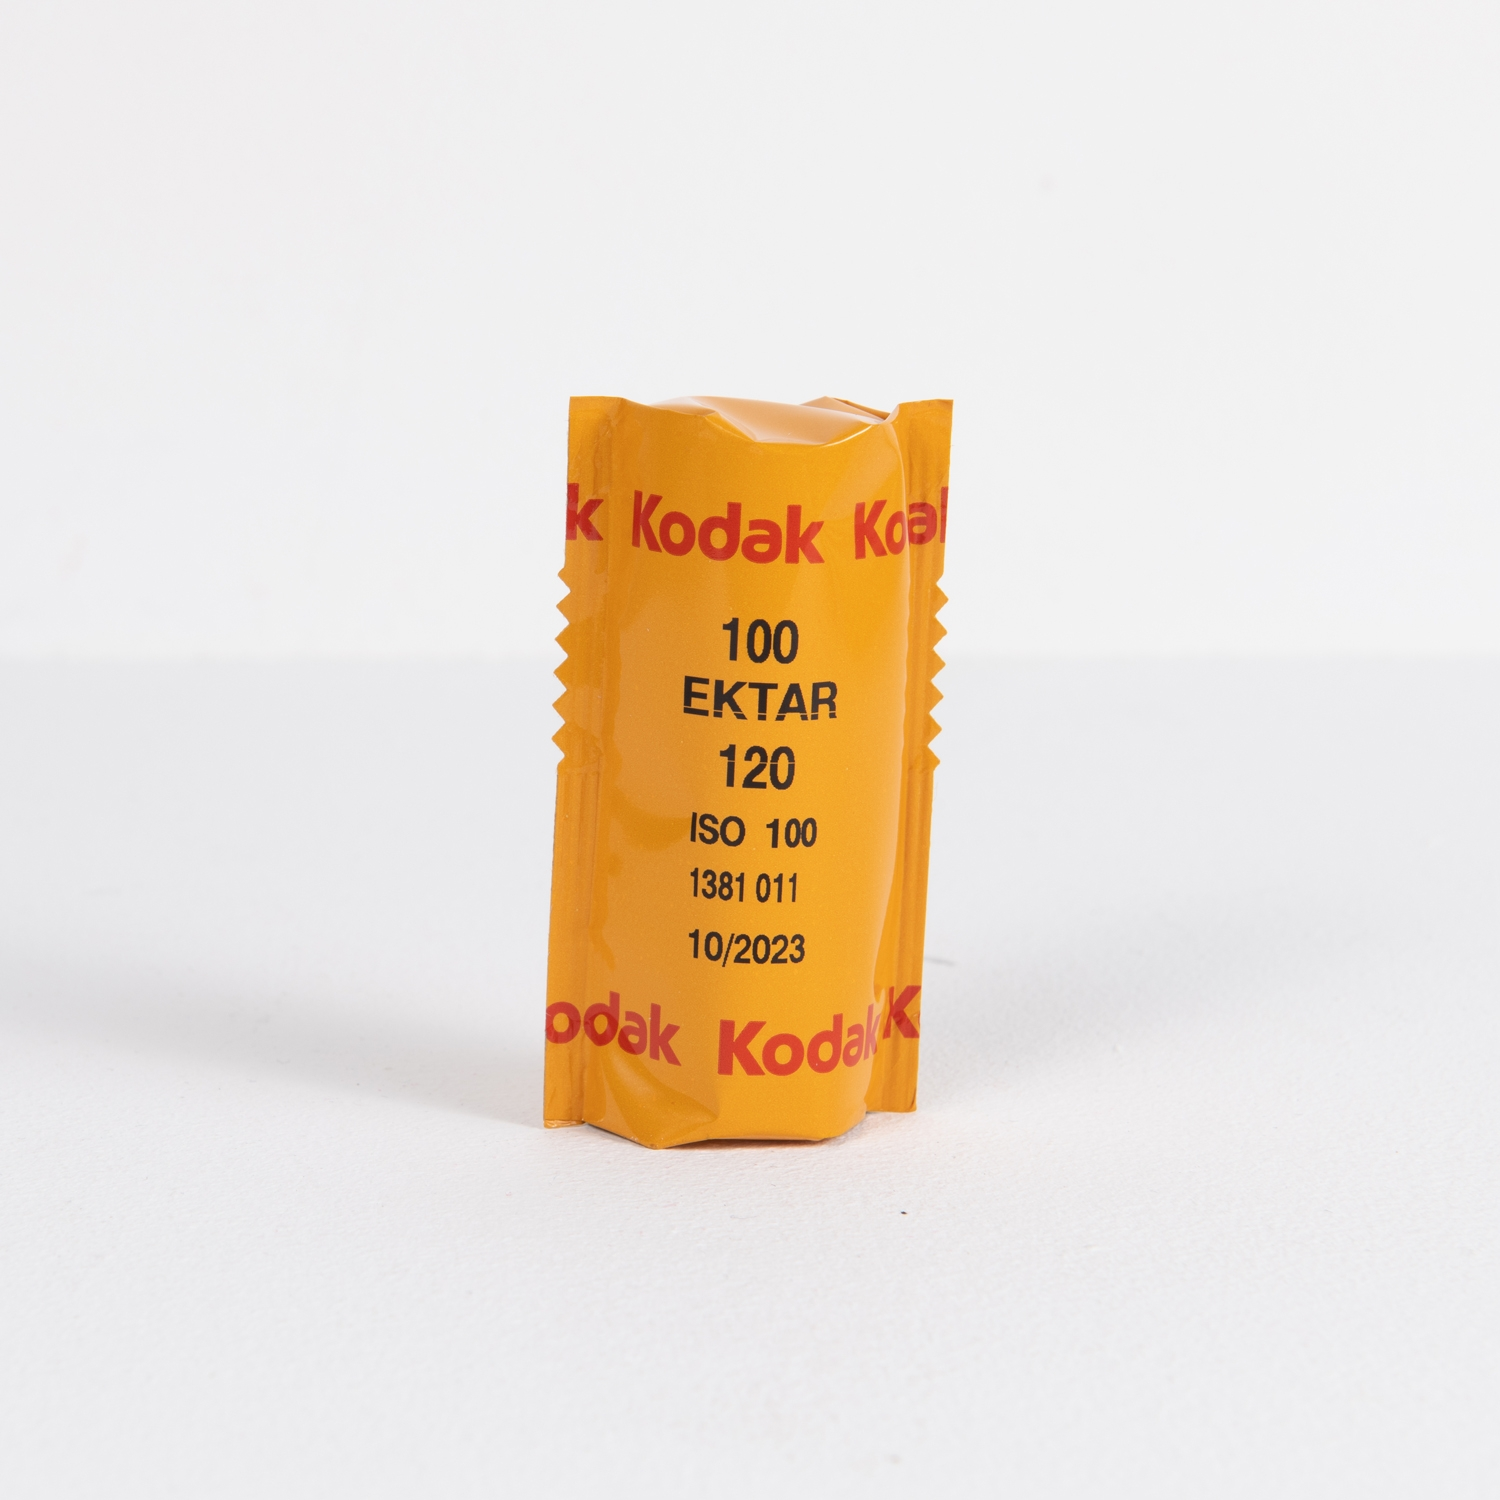 Kodak Ektar, 100 Color Negative Film (120 - Single Film)